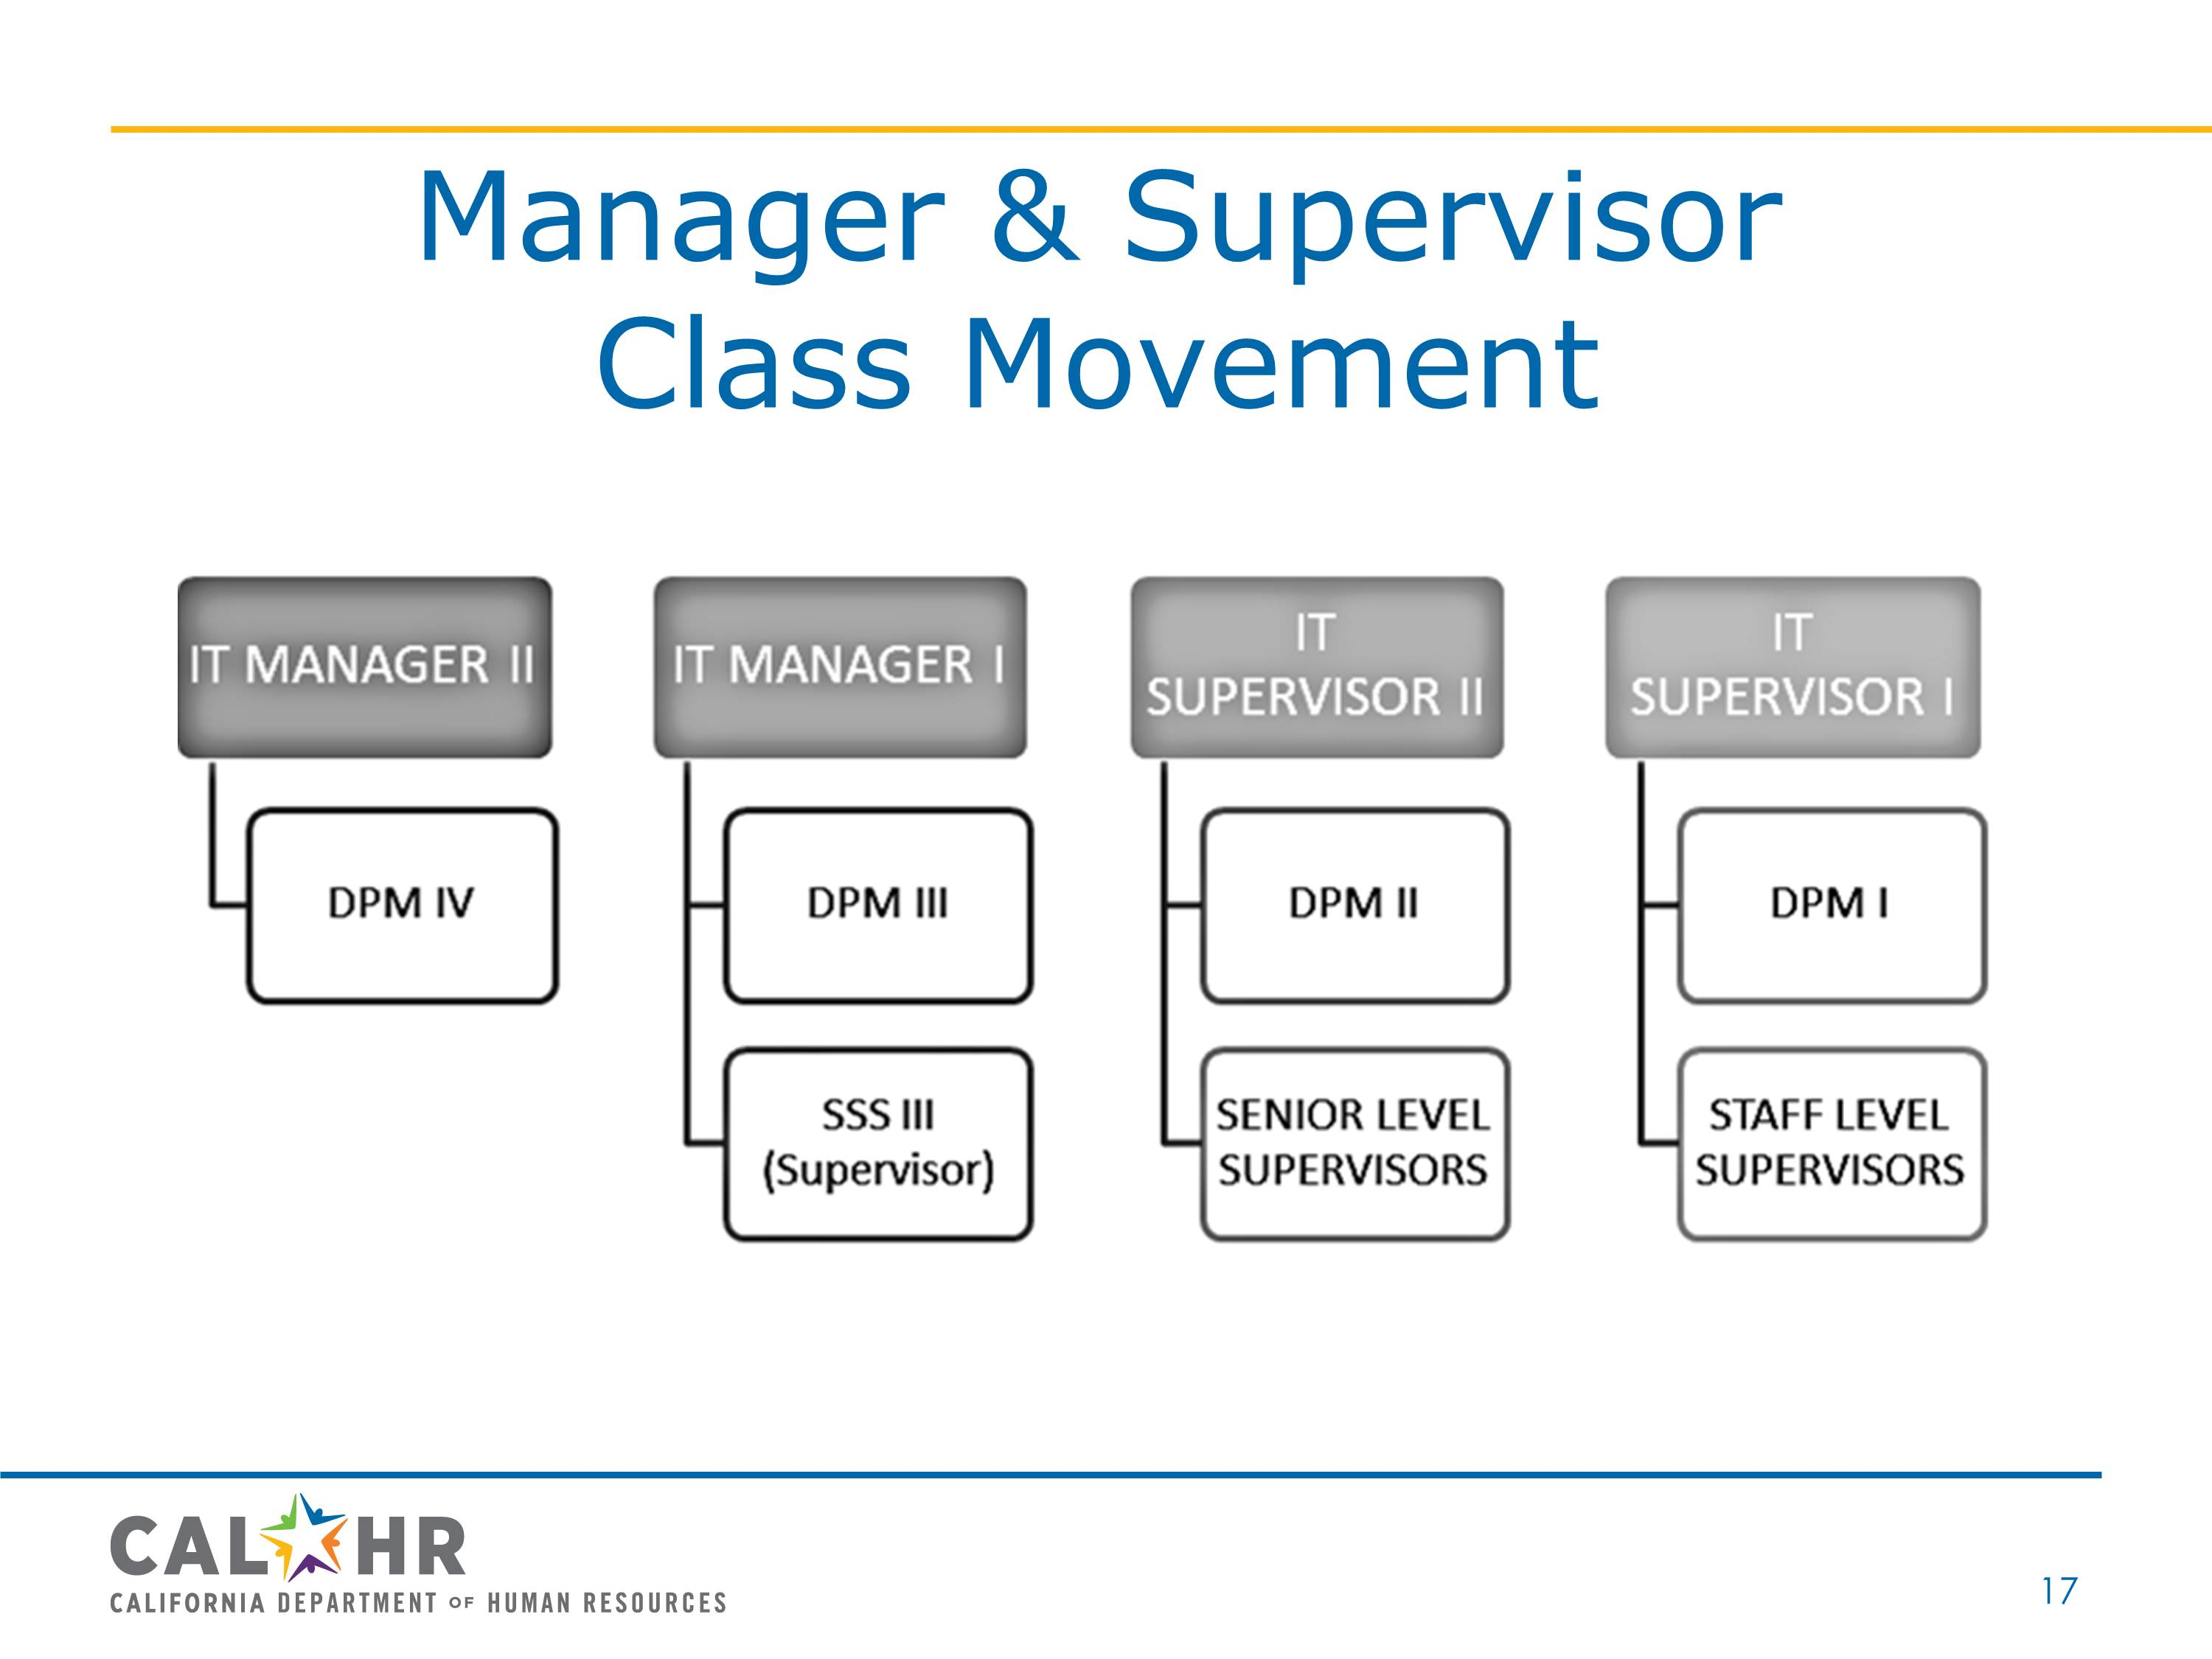 Manager & Supervisor Class Movement